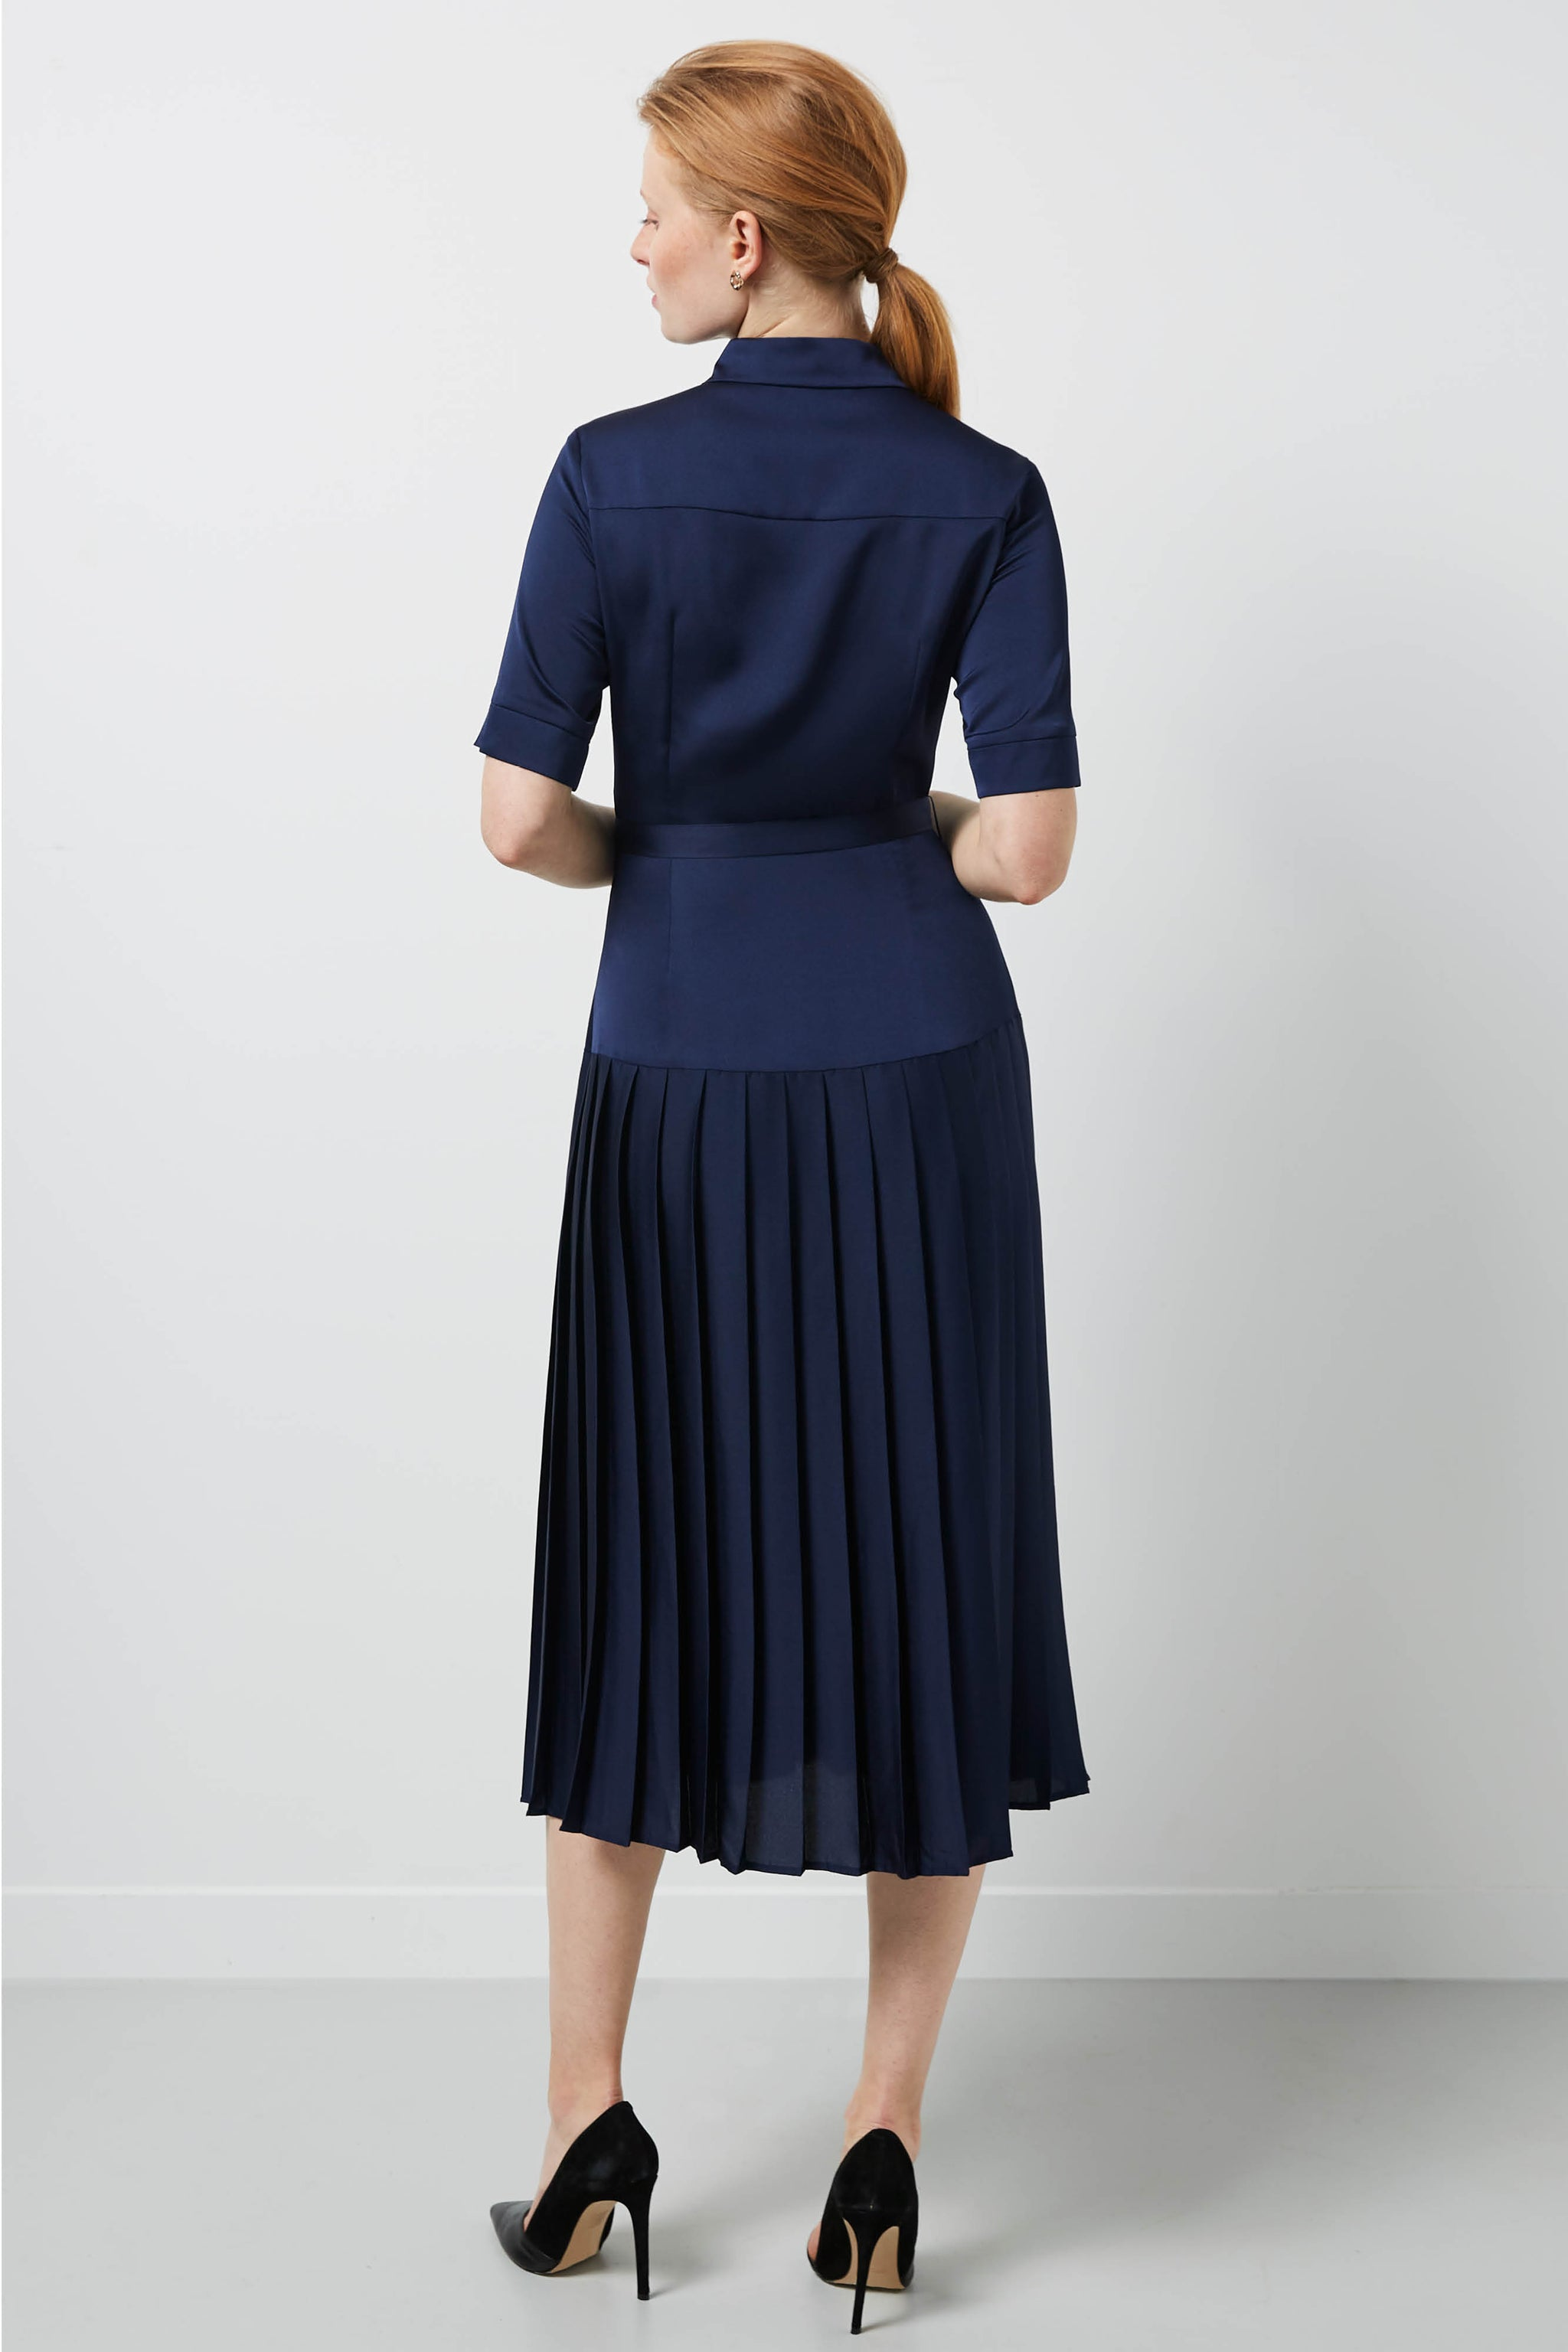 Tavistock Navy Shirt Dress